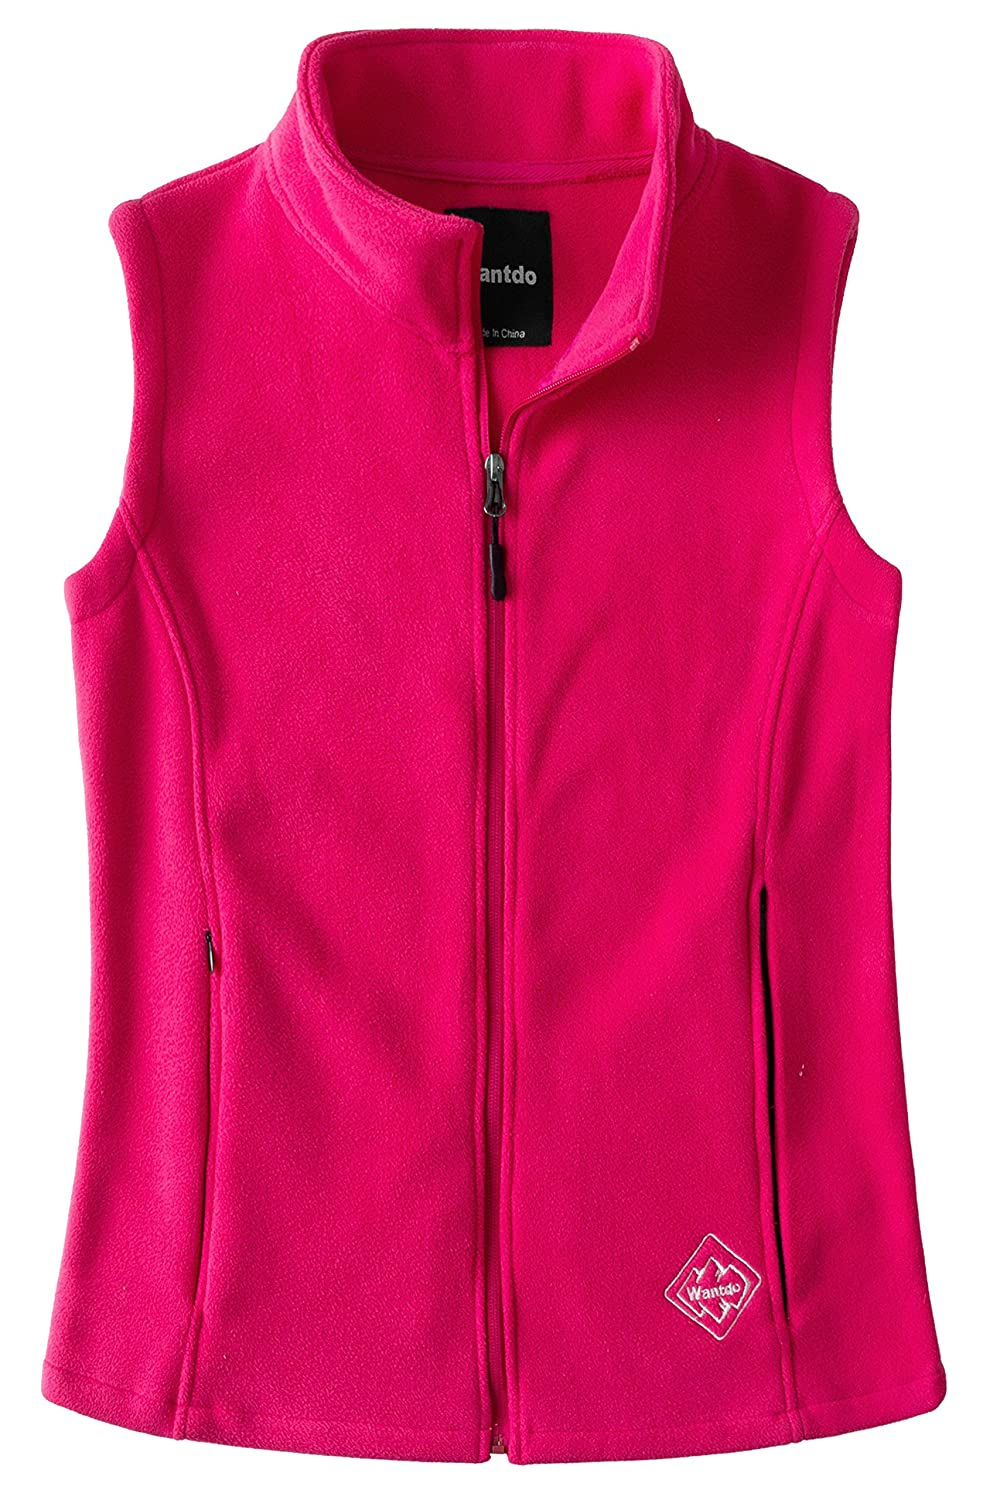 Wantdo Women's Fleece Outdoor Vest Casual Full Zip Outfit Gilet WDHW664